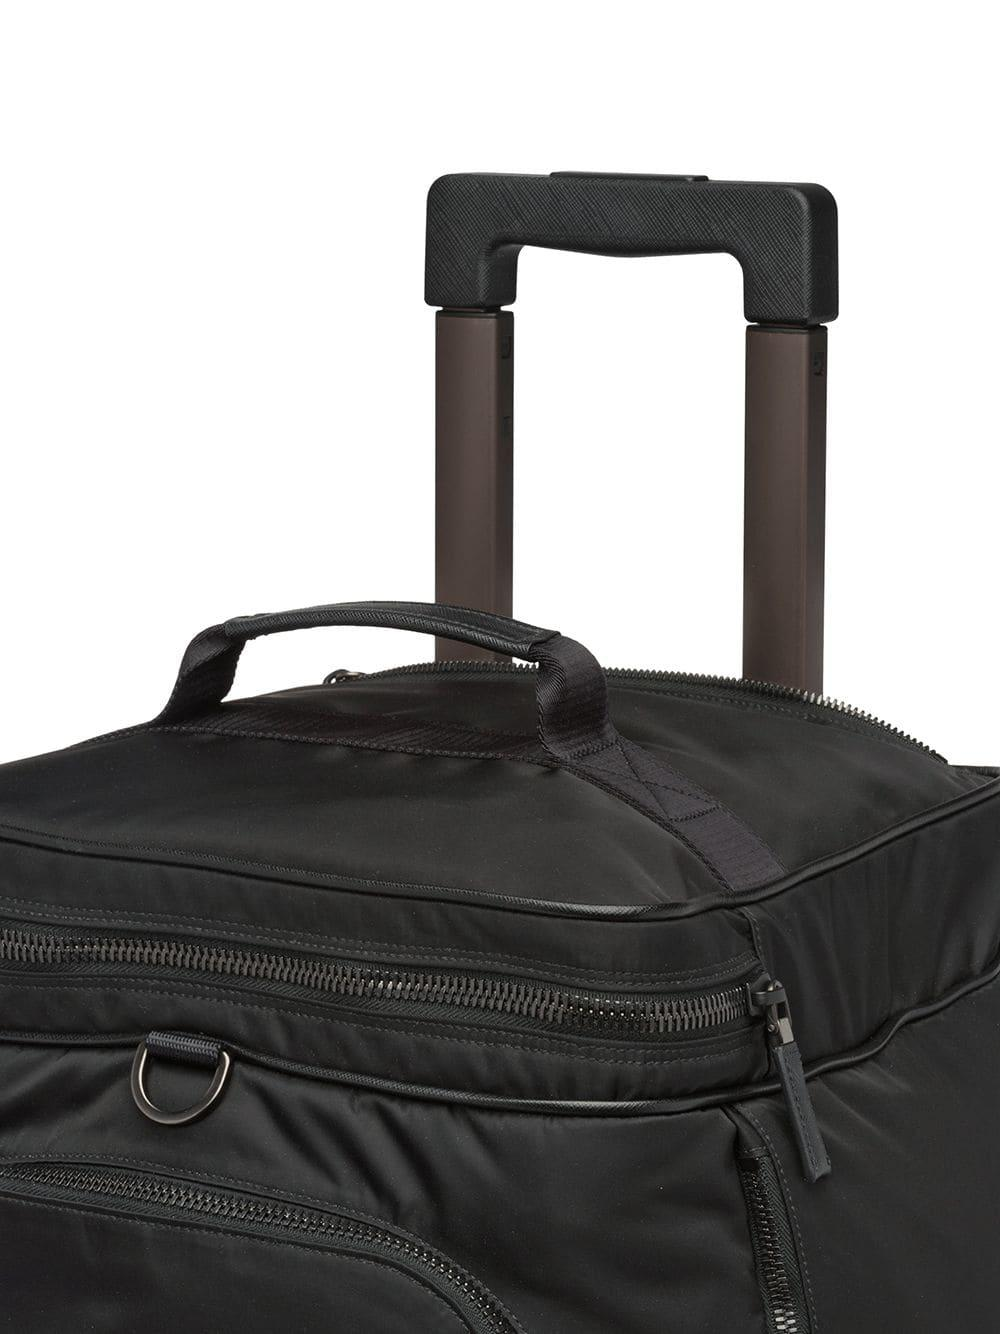 b934716662 Prada Nylon And Saffiano Leather Wheeled Carry-on in Black for Men ...